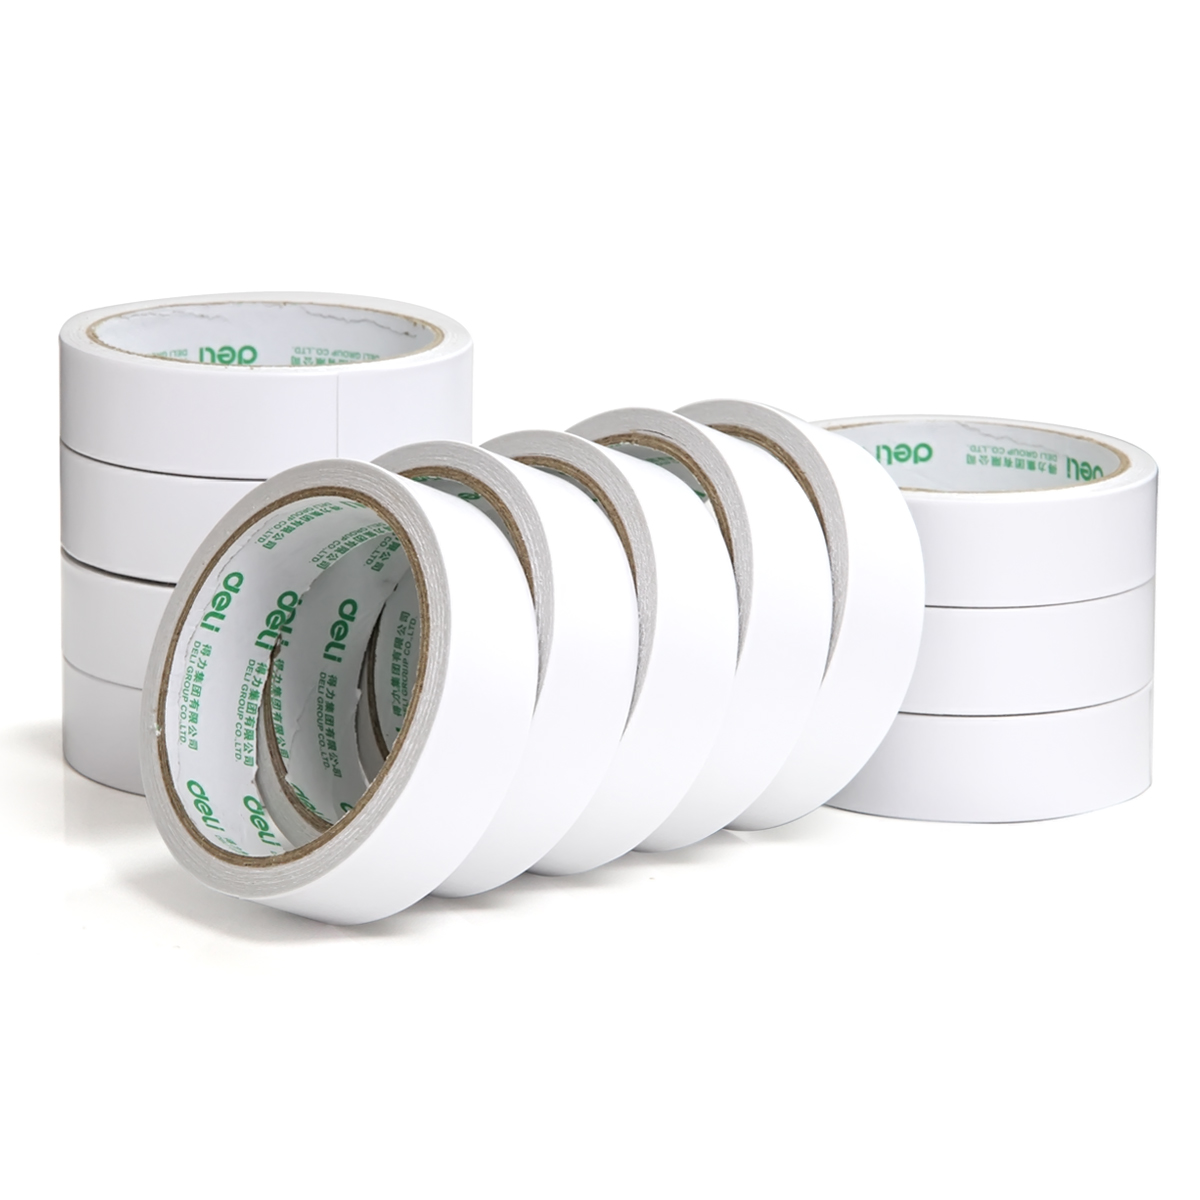 1 Pcs Deli 2.4cm*10y Super Slim Strong Adhesion White Double Sided Tape Doubles Faced Adhesive For Office Supplies 10m super strong waterproof self adhesive double sided foam tape for car trim scotch